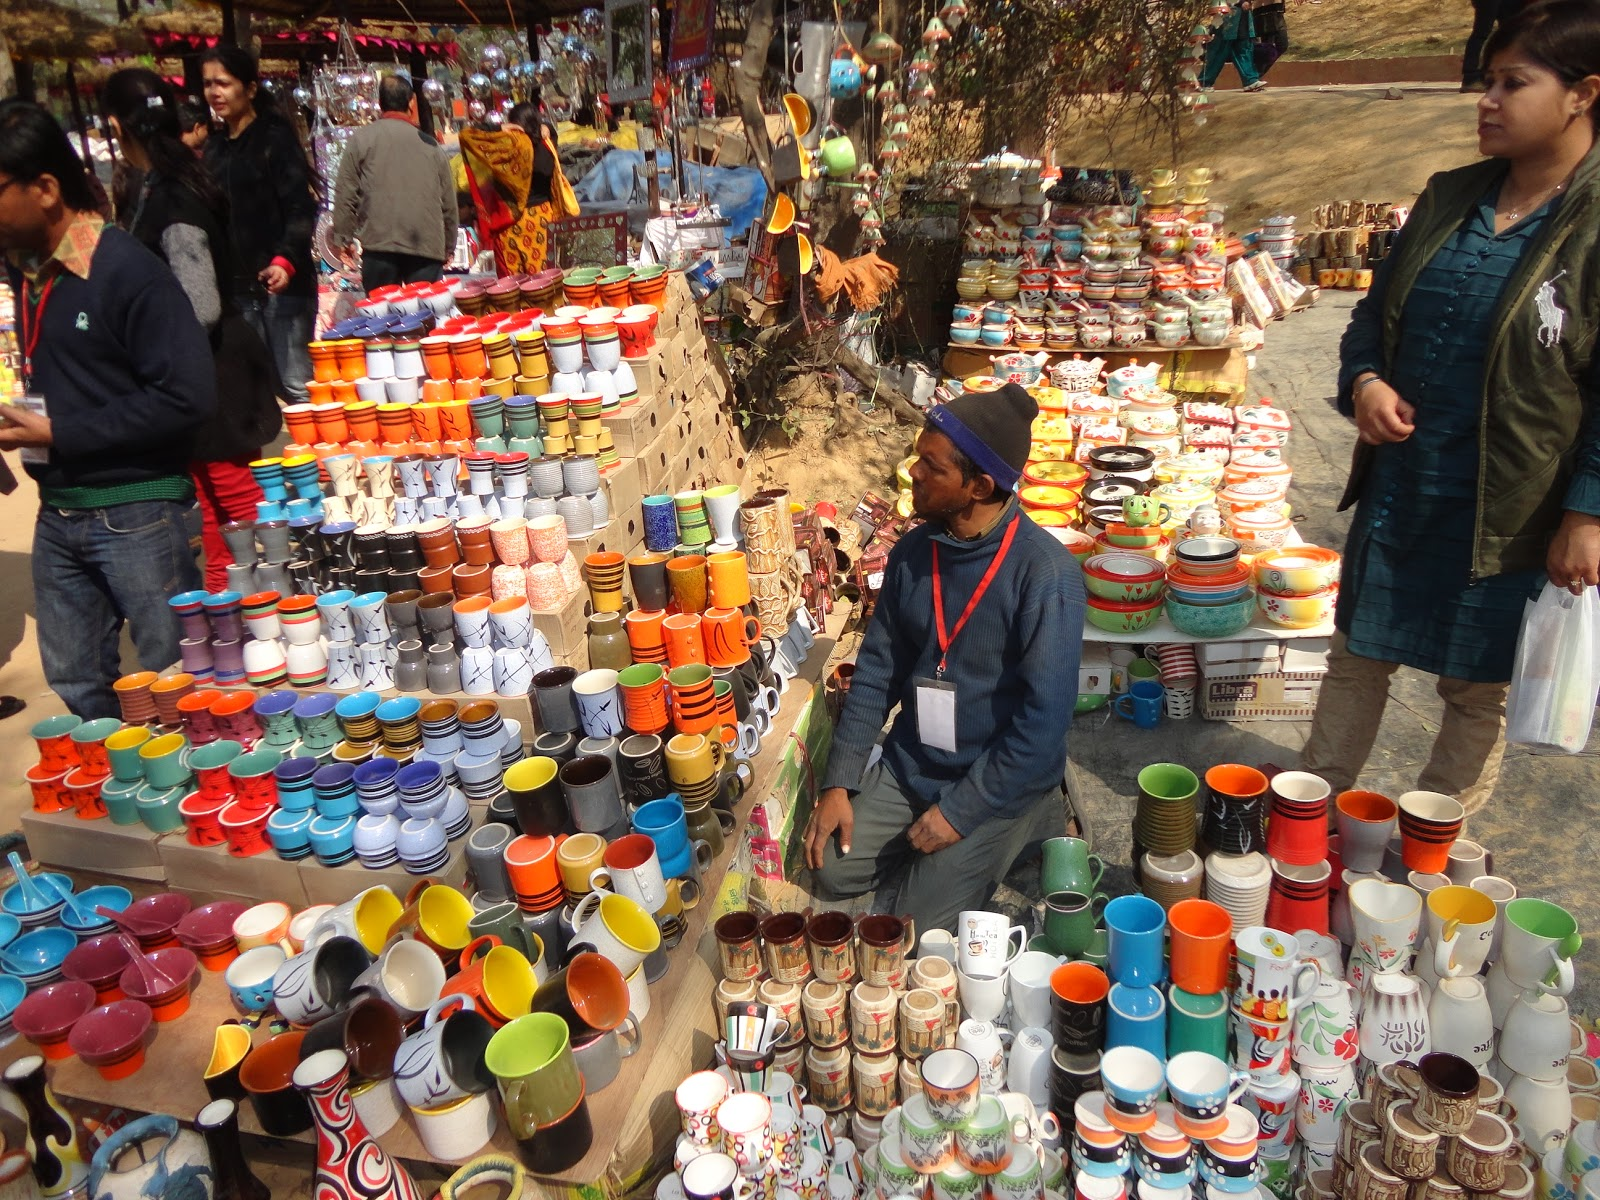 Colorful Coffee Mugs at Surajkund Crafts Mela,India